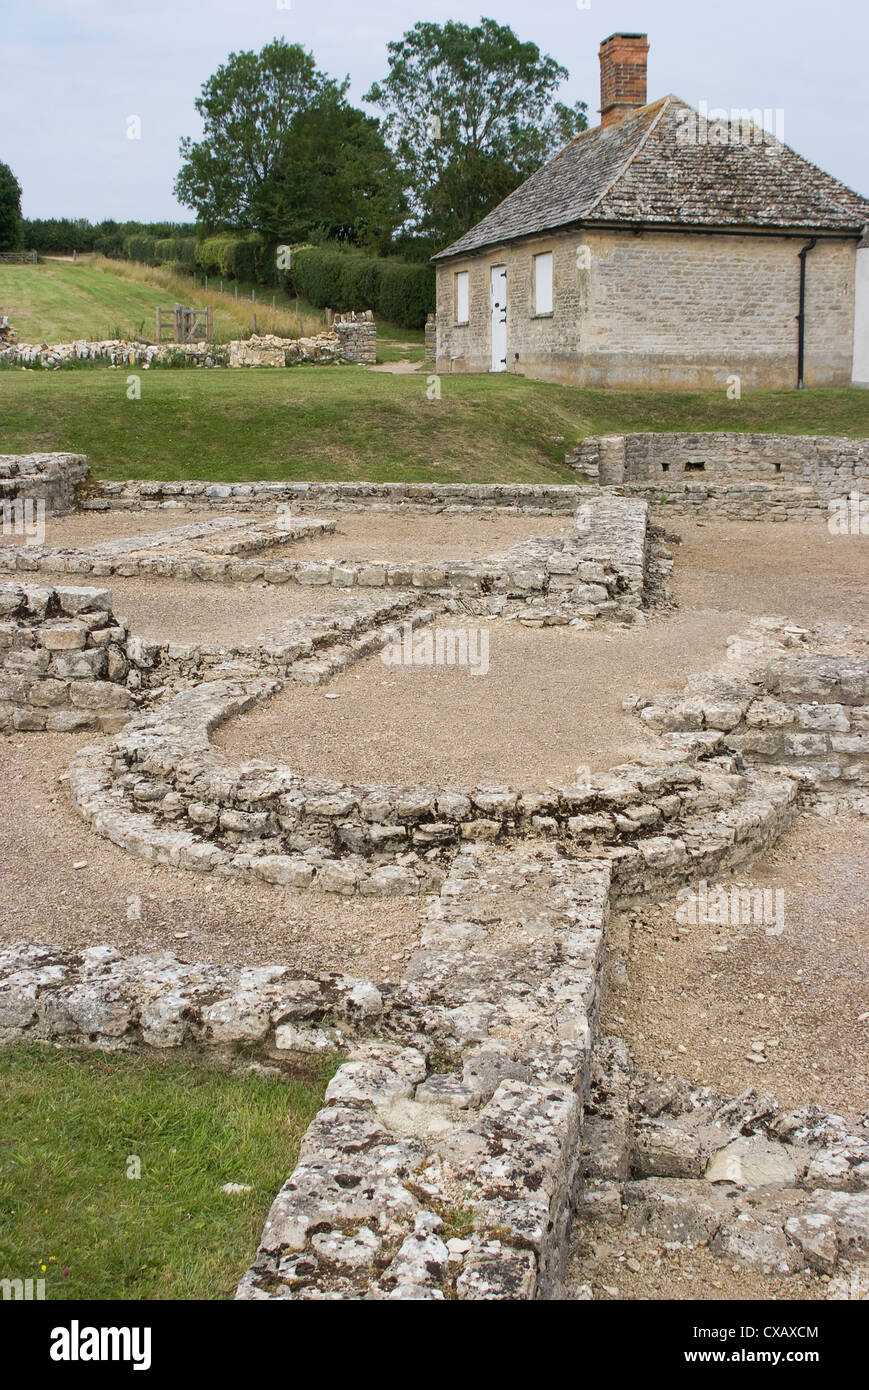 North Leigh Roman villa, the remains of a large manor house dating from the 1st to 3rd century AD, North Leigh, Stock Photo